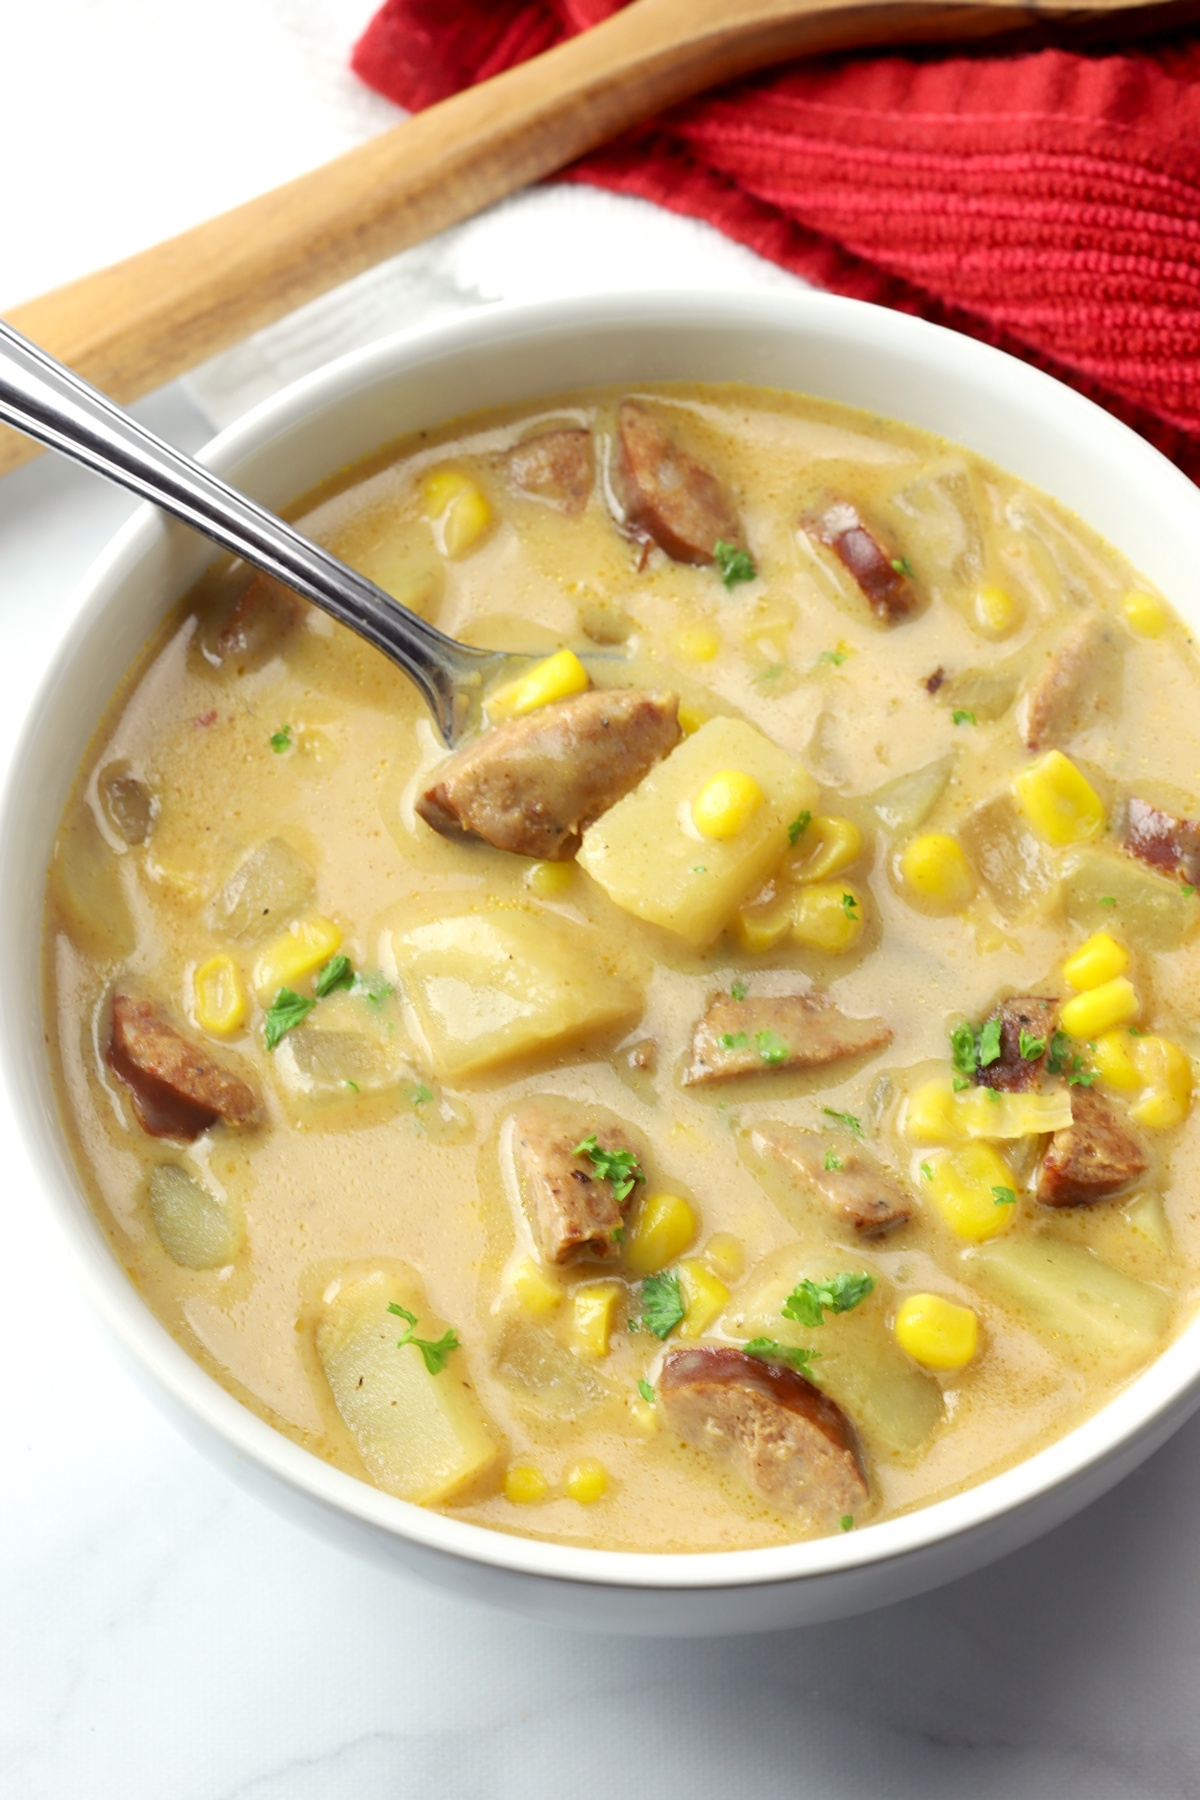 A white bowl filled with corn chowder with andouille sausage.